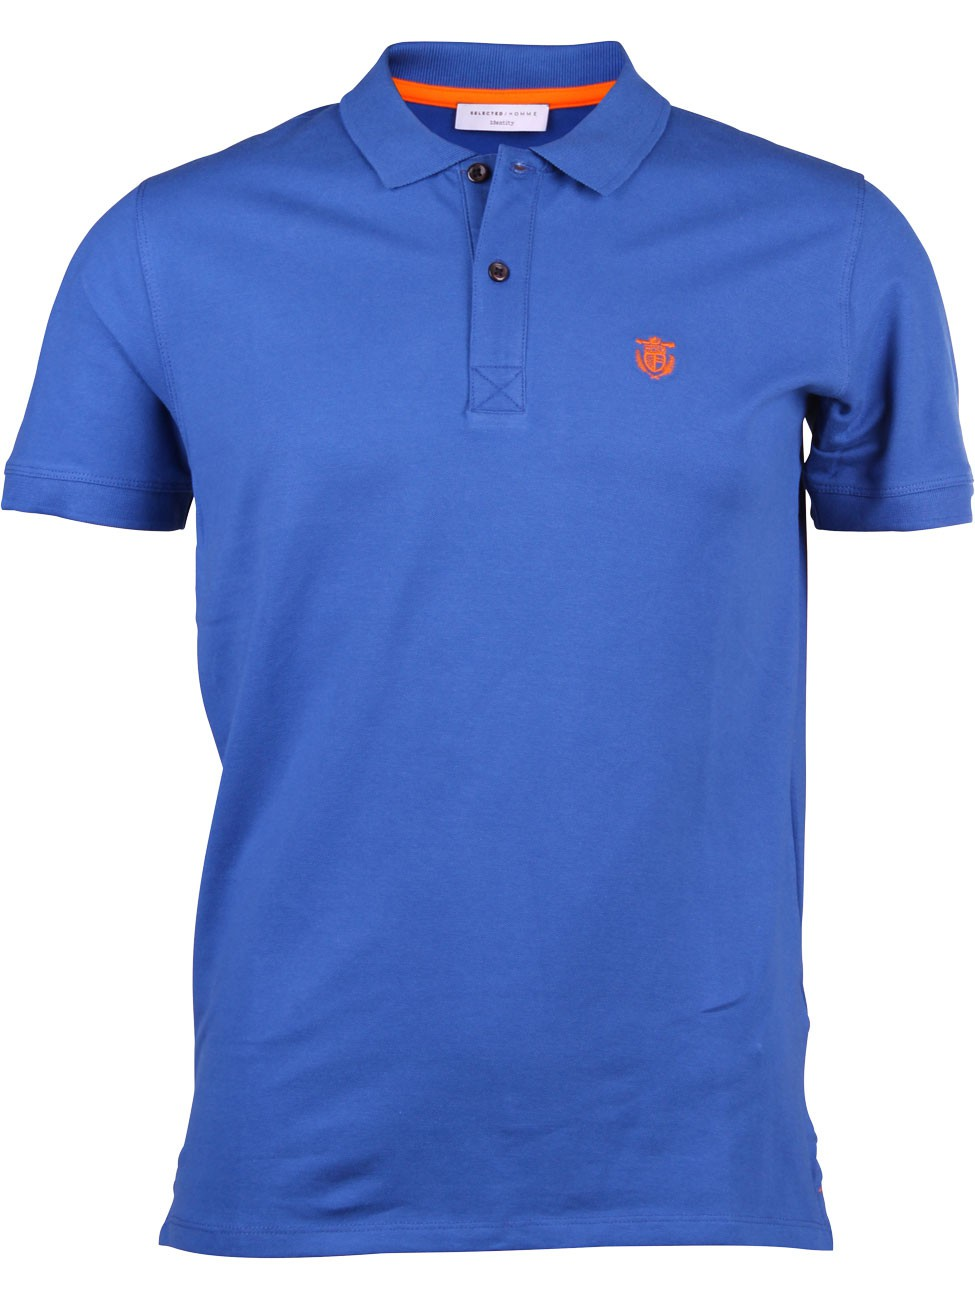 Selected herren polo shirt shdaro embroidery kaufen for Polo shirt and jeans